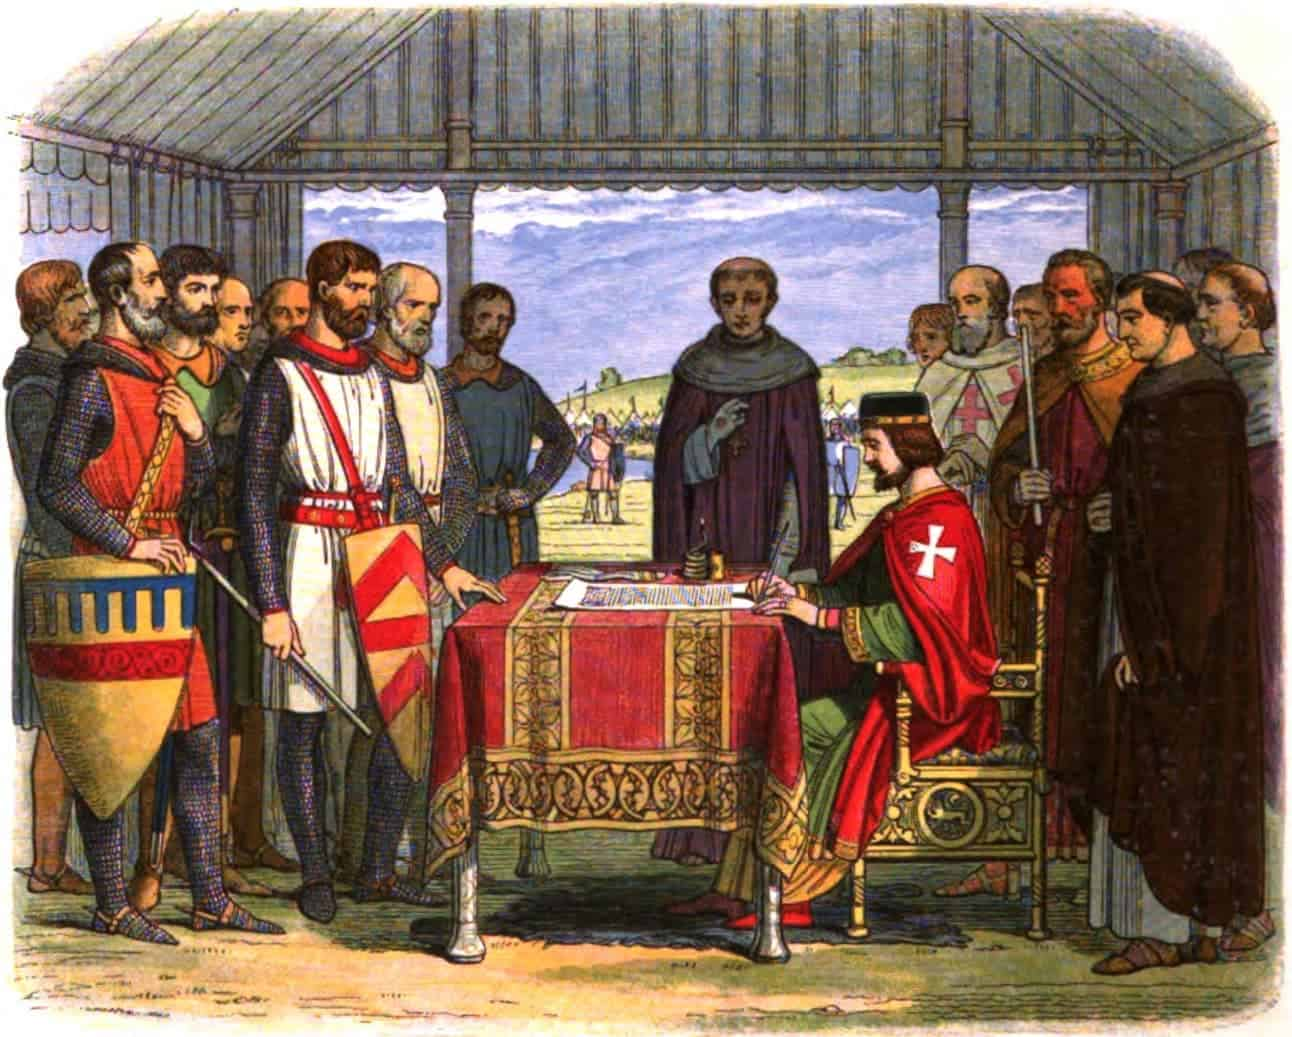 Wikipedia (19th century depiction of Magna Carta signing)